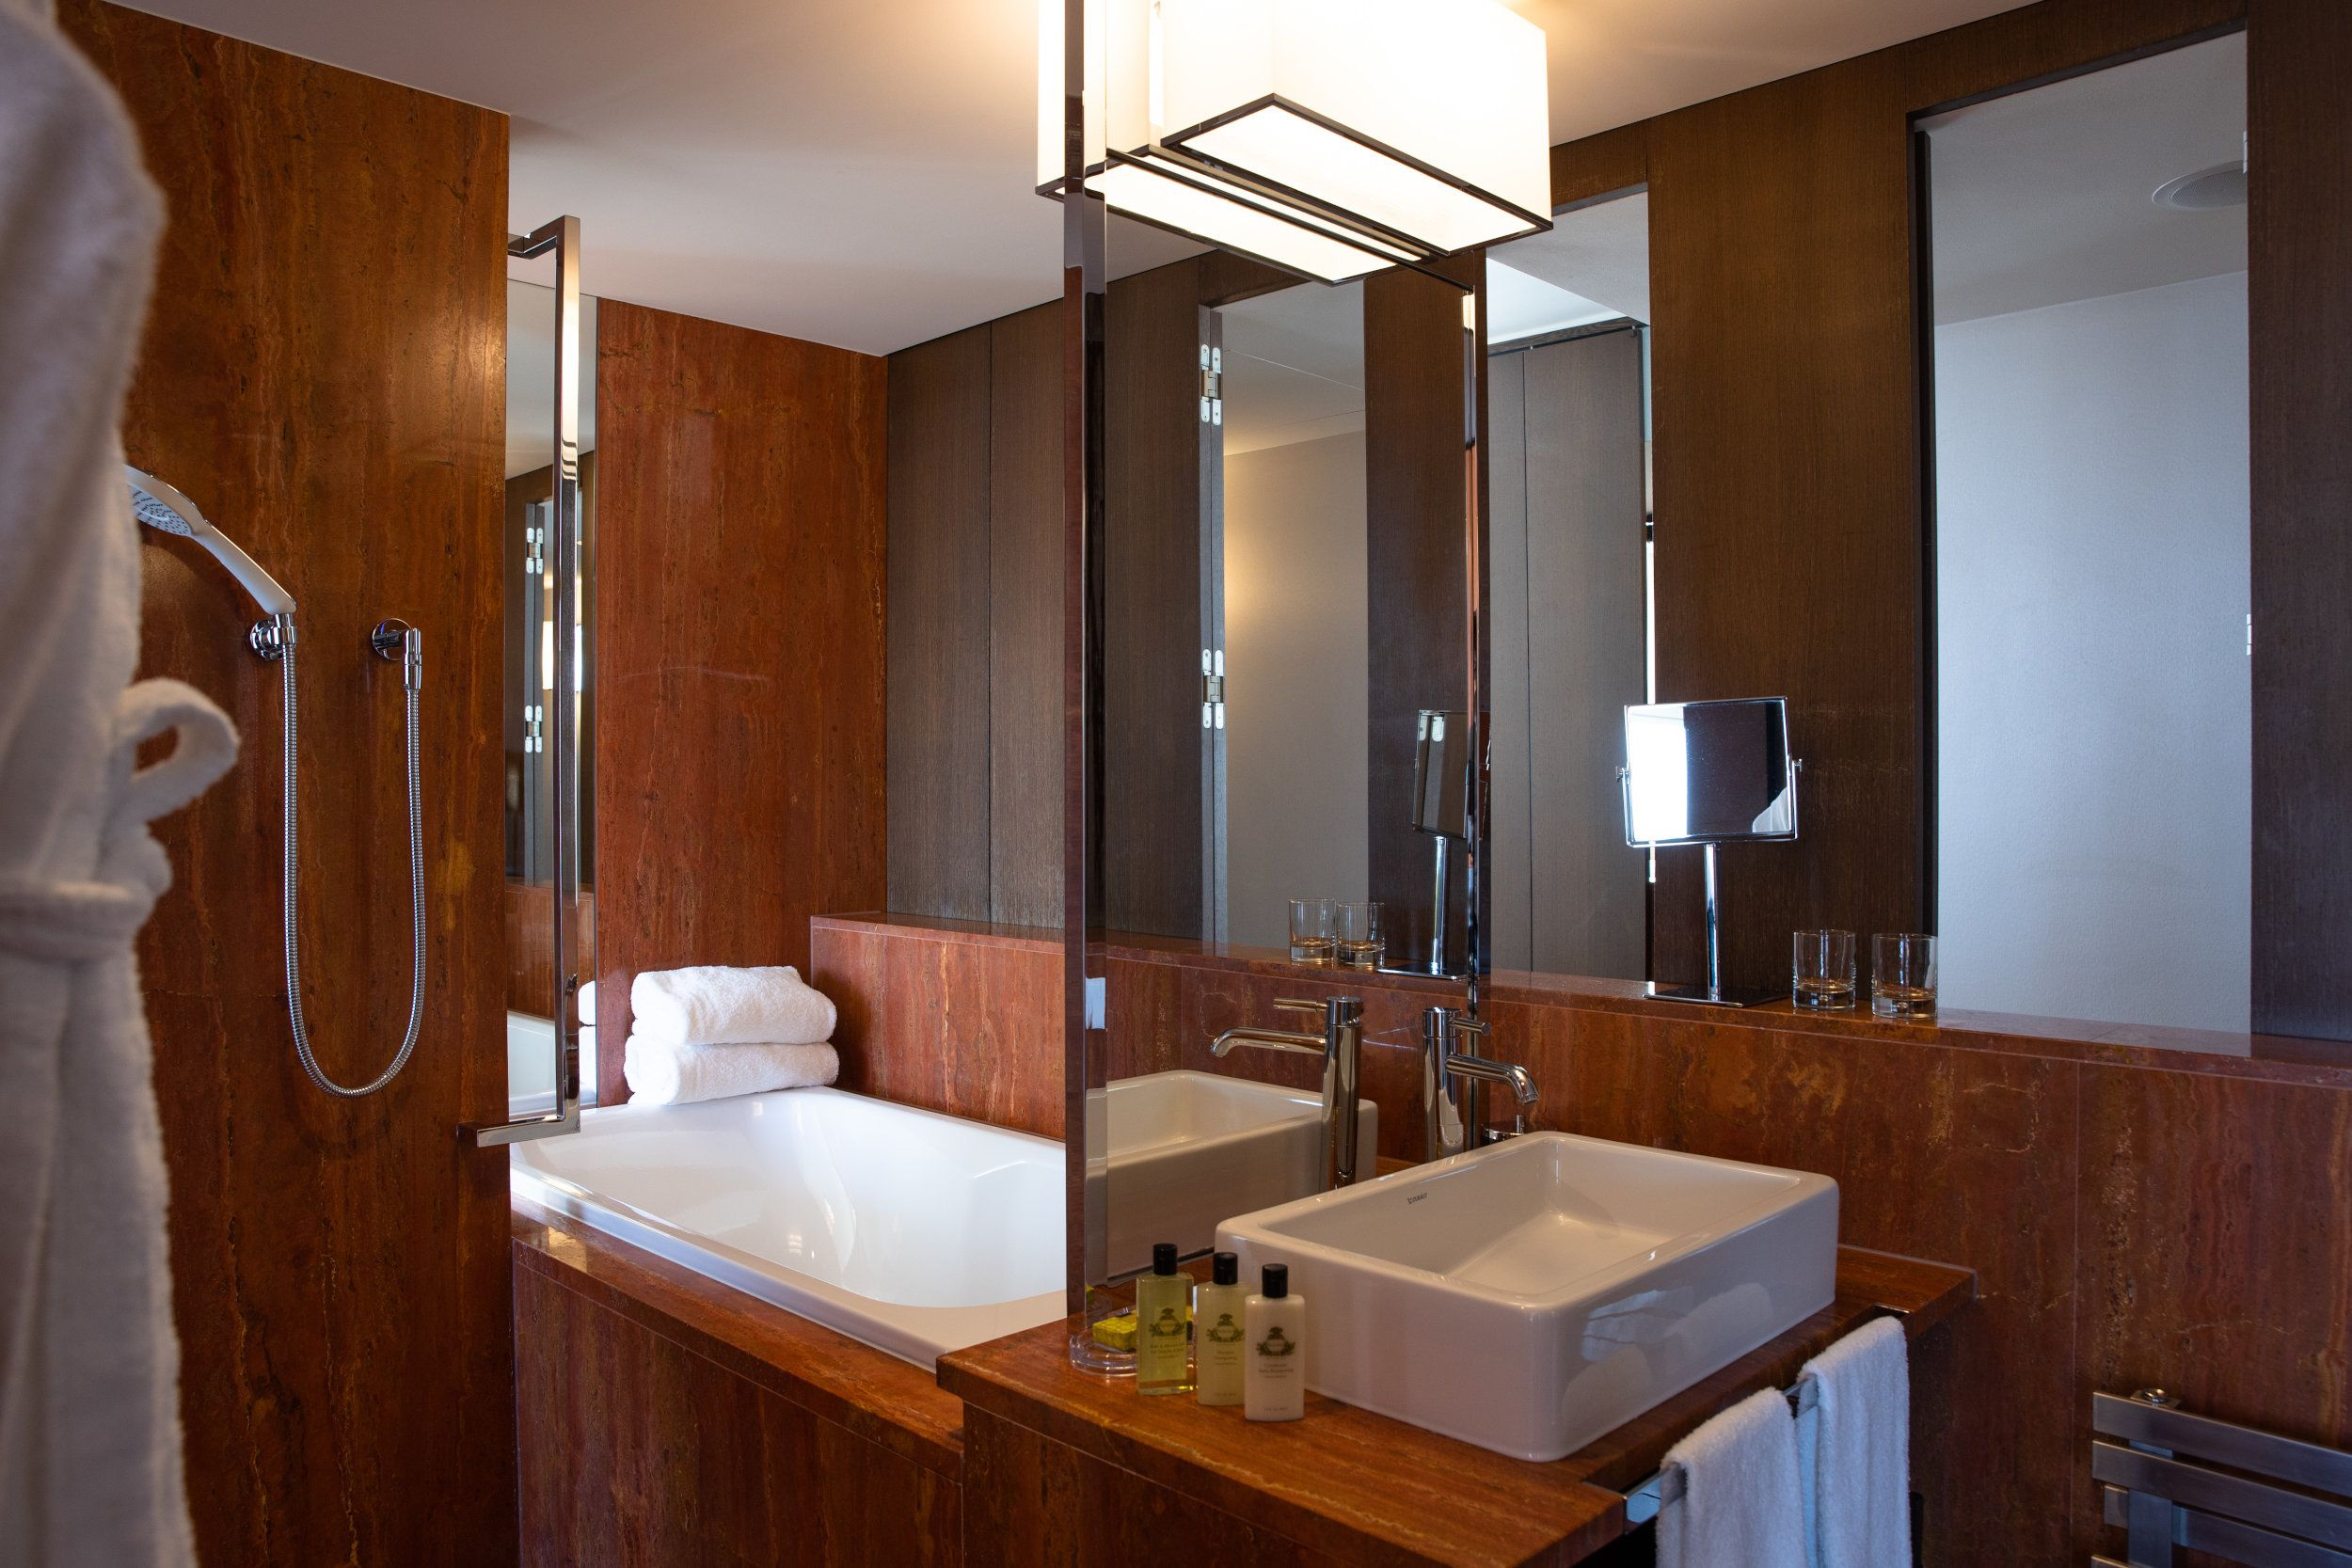 InterContinental-Geneva-Suites-and-rooms-Executive-lake-view-room-5